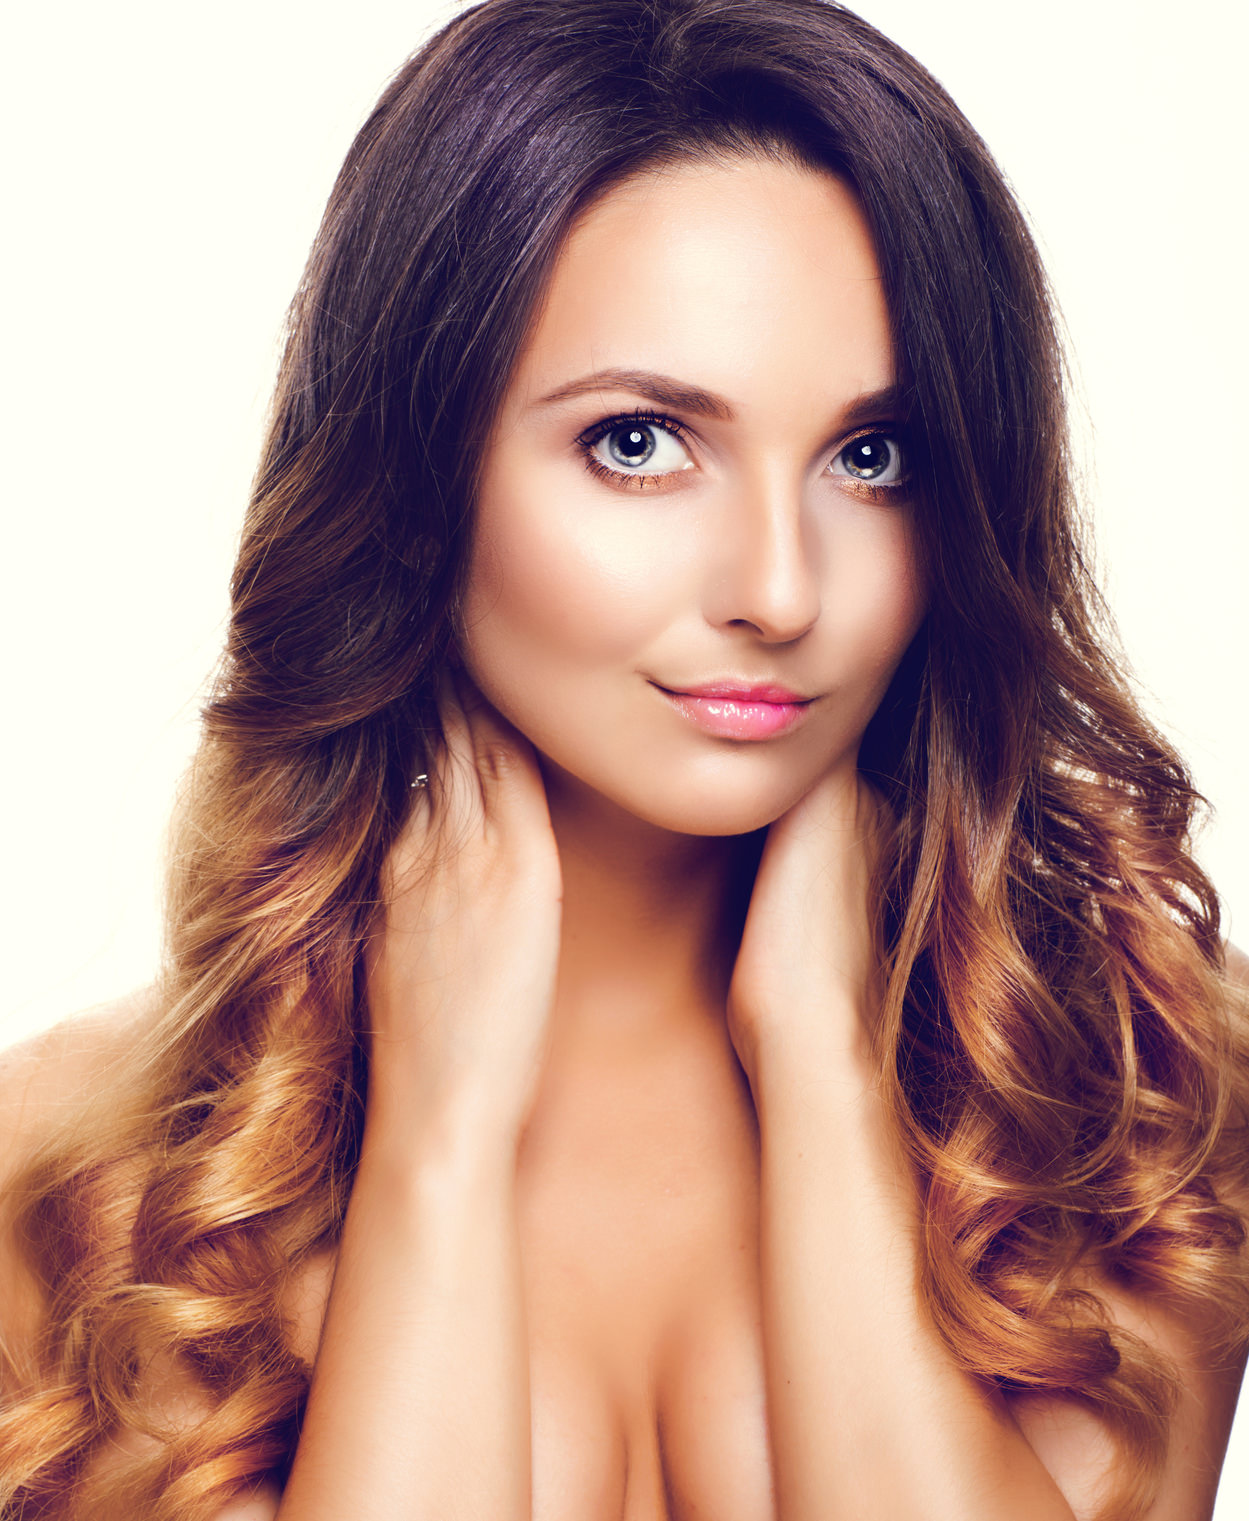 Regular Highlights Are Out: Try Ombre, Balayage and Babylights Instead